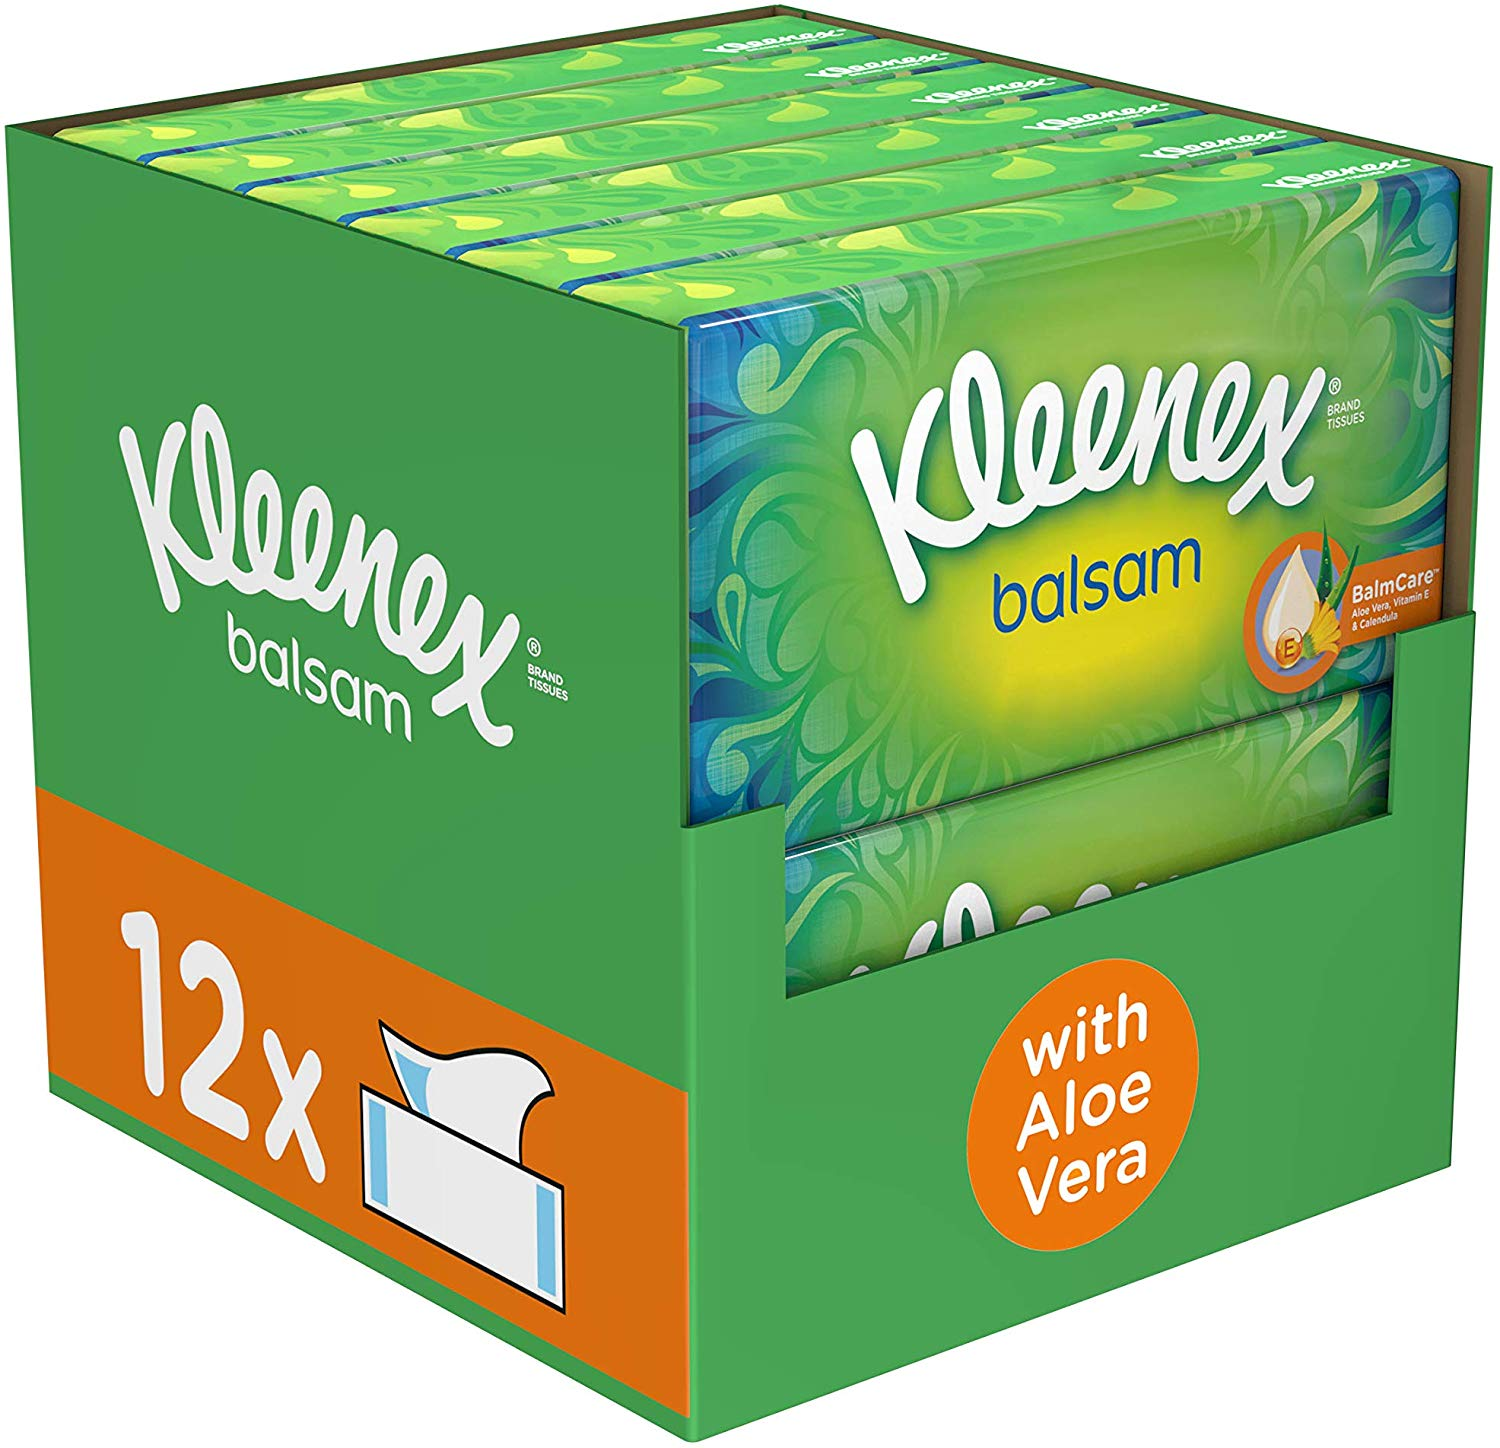 Kleenex Balsam Facial Tissues, Pack of 12 Tissue Boxes (Protective Balm for Cold and Flu Symptoms)